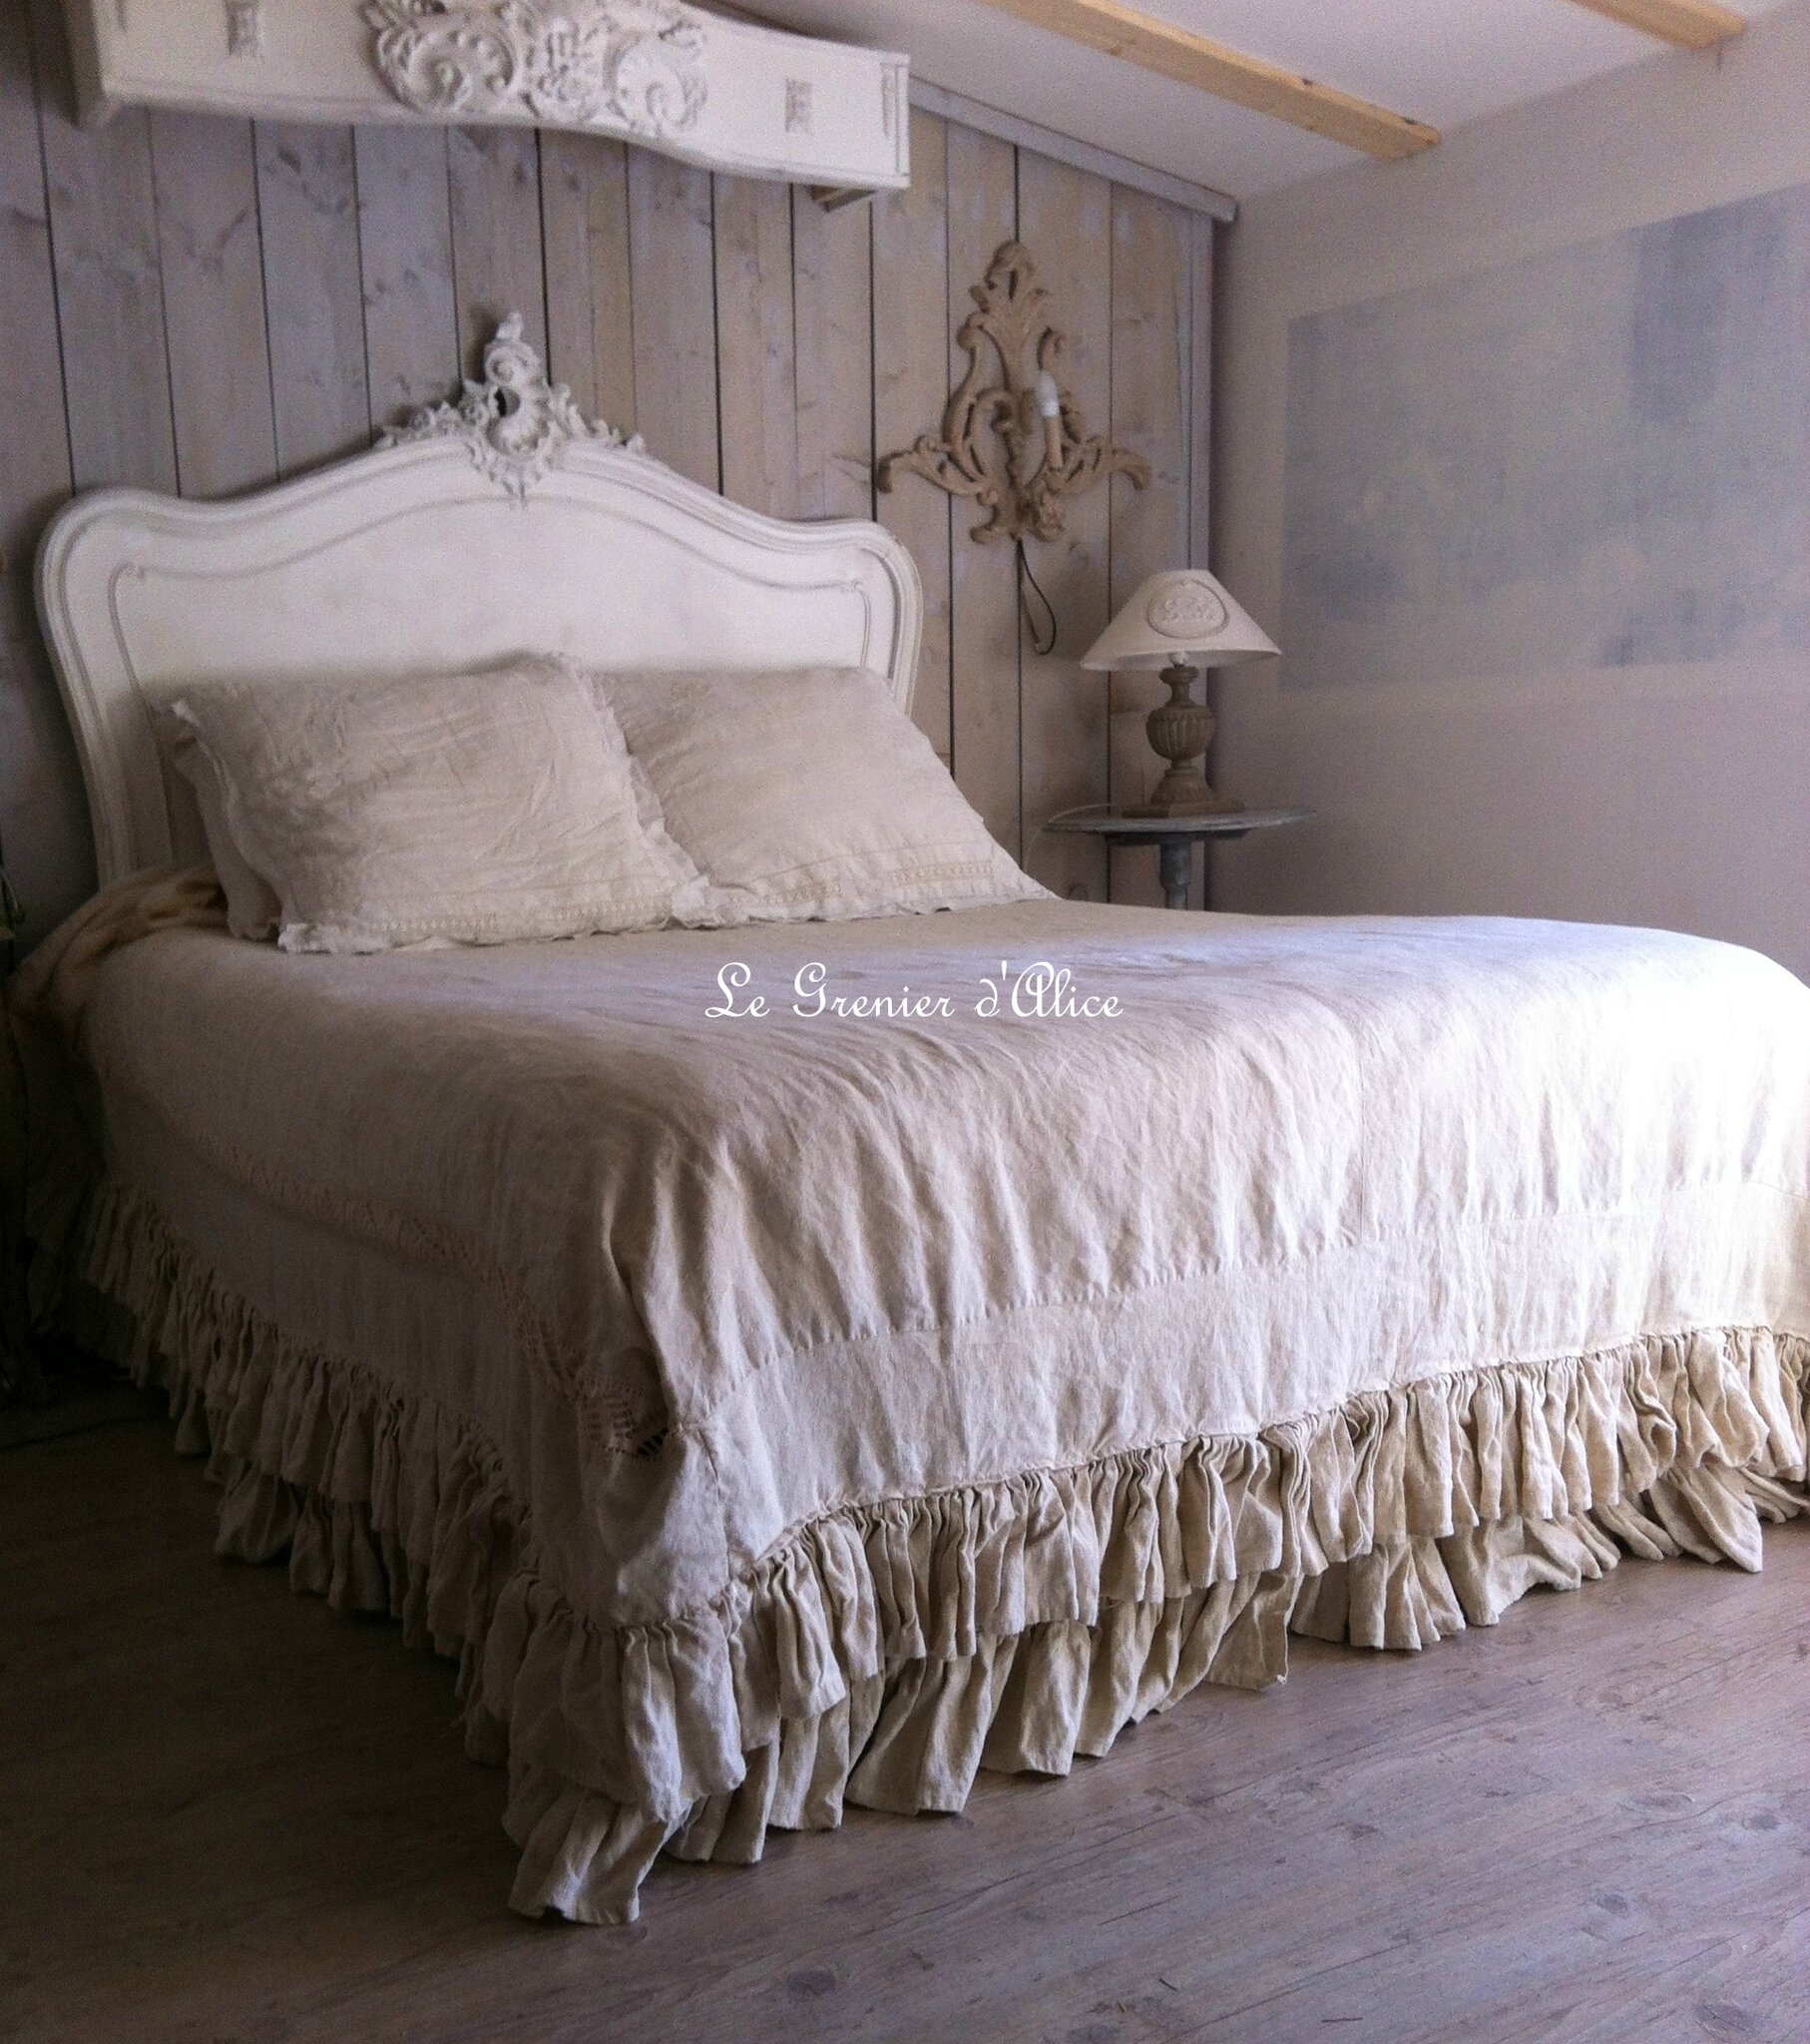 housse de couette volants tr s shabby chic le grenier d 39 alice. Black Bedroom Furniture Sets. Home Design Ideas